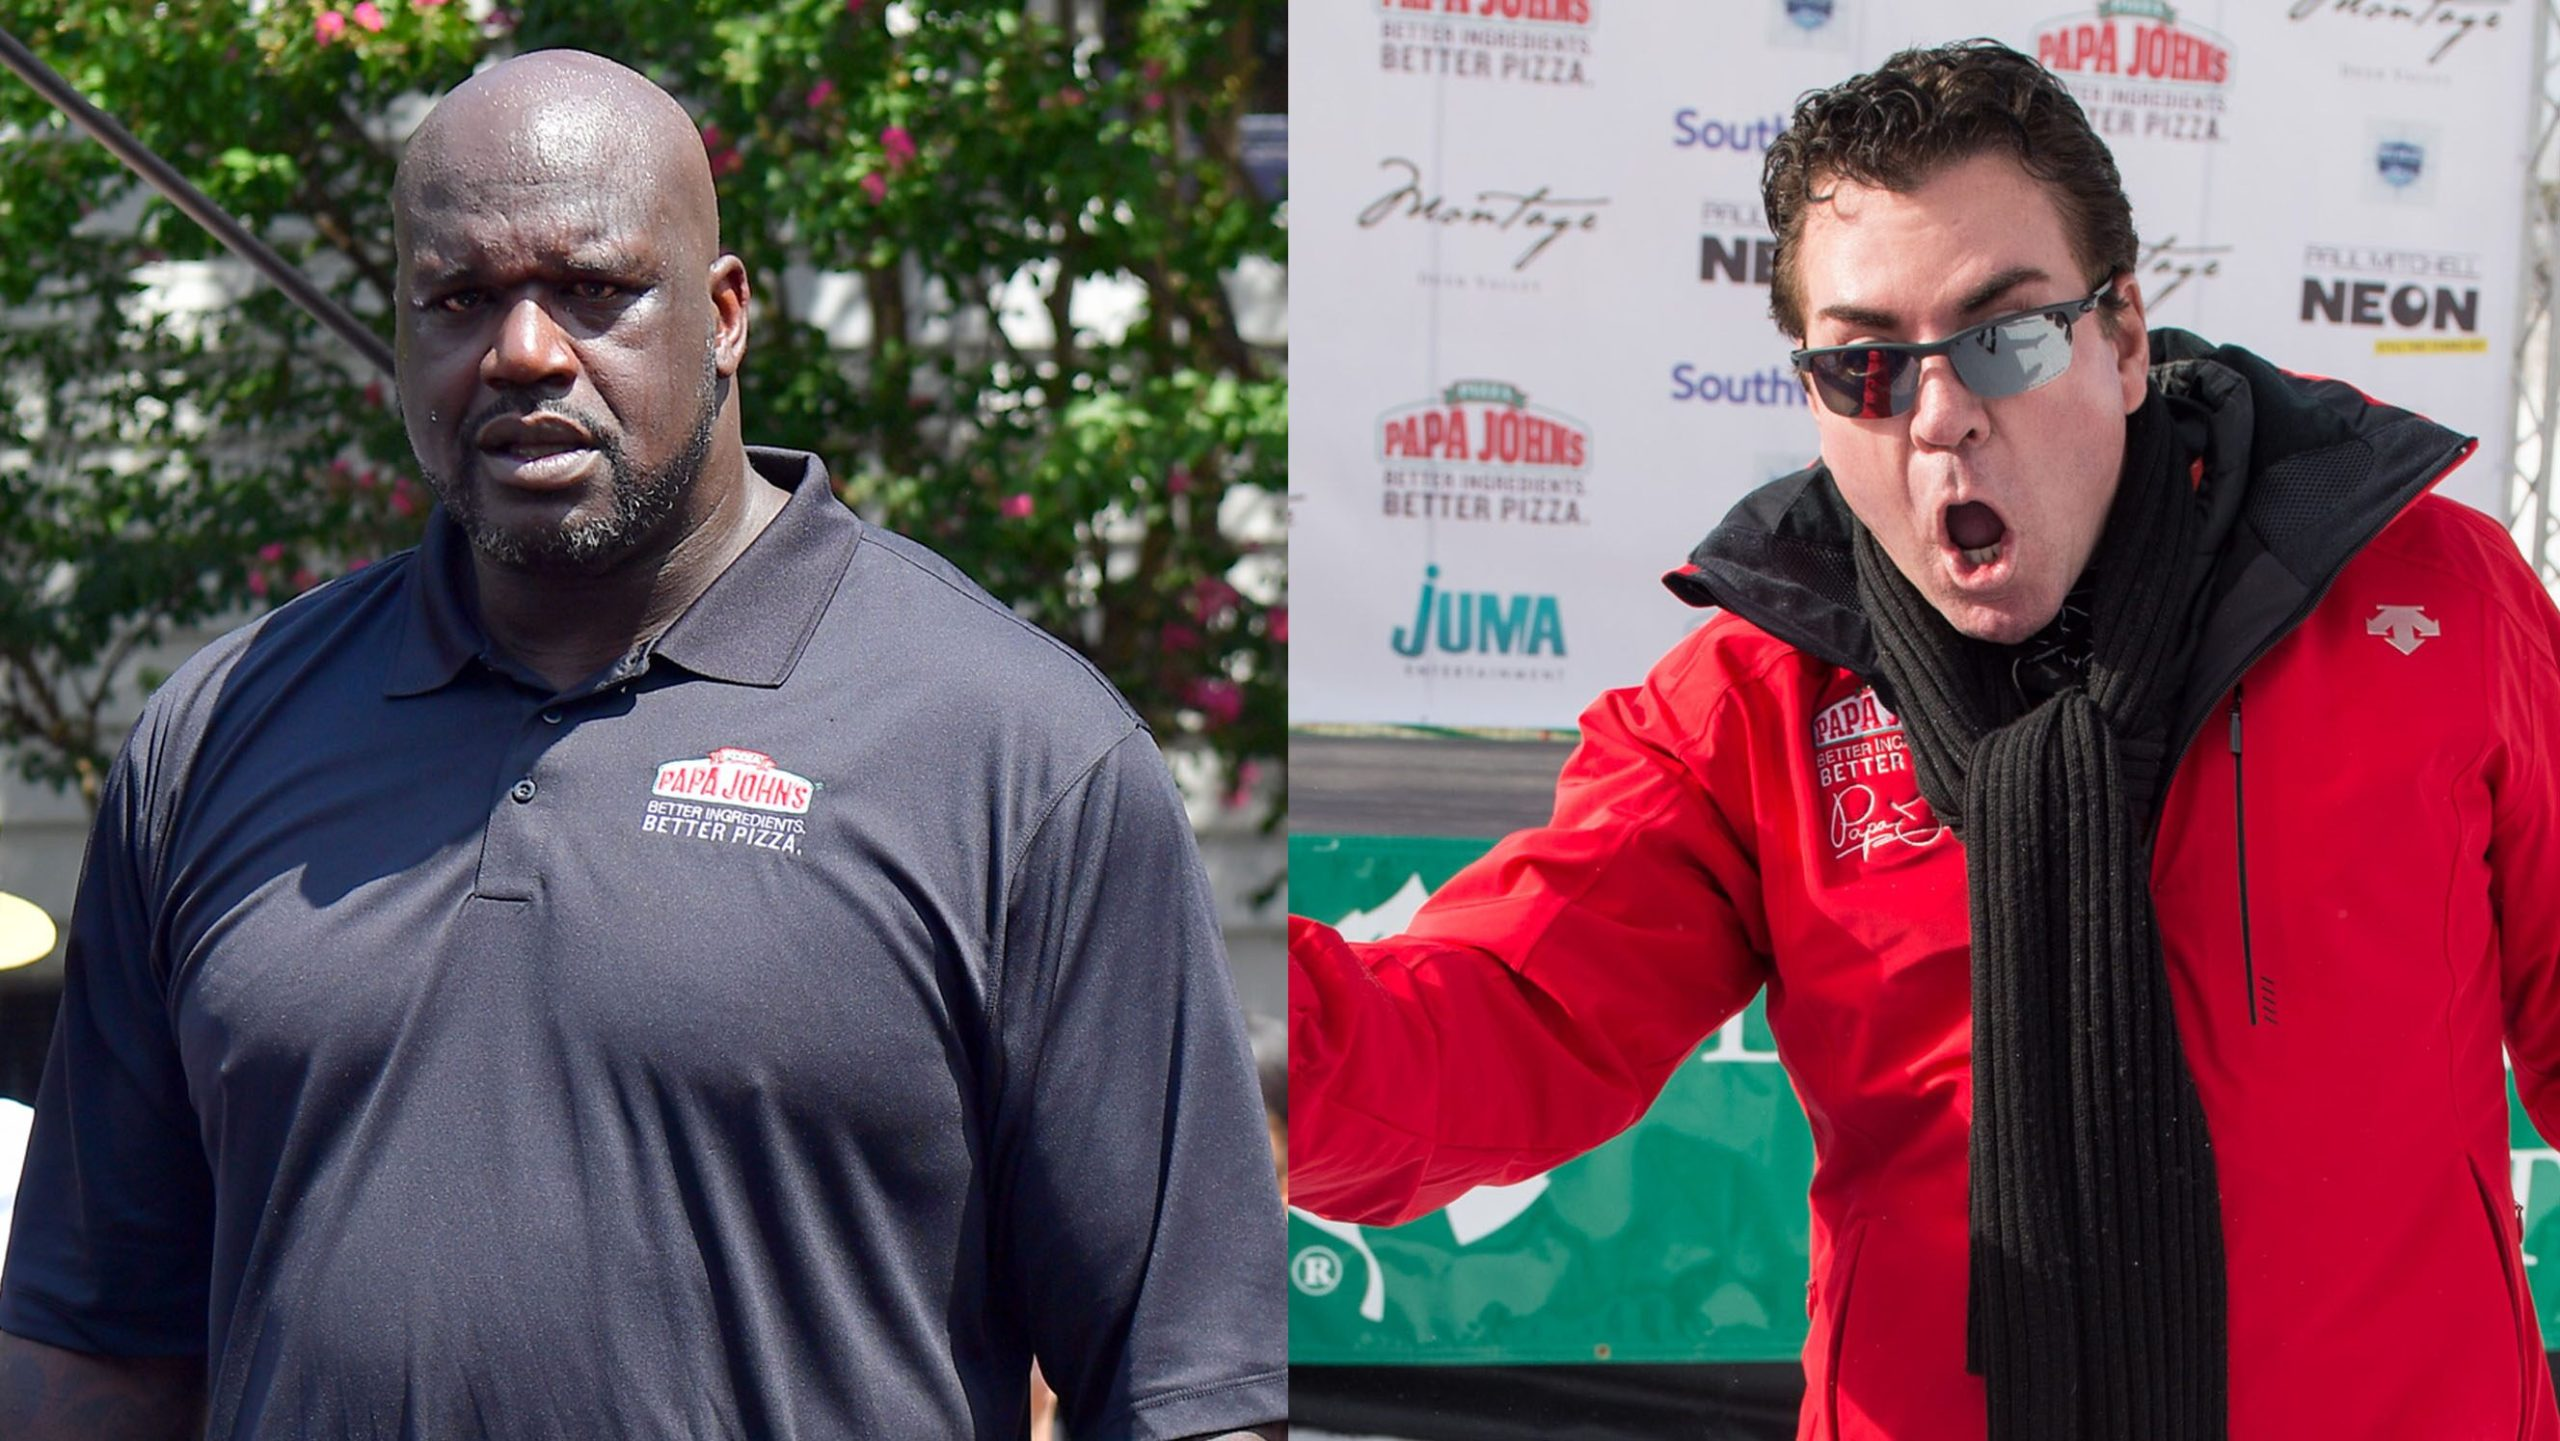 Fox News Today: Former Papa John's CEO criticized by Shaq: 'Sometimes people don't know when to keep their mouths shut'